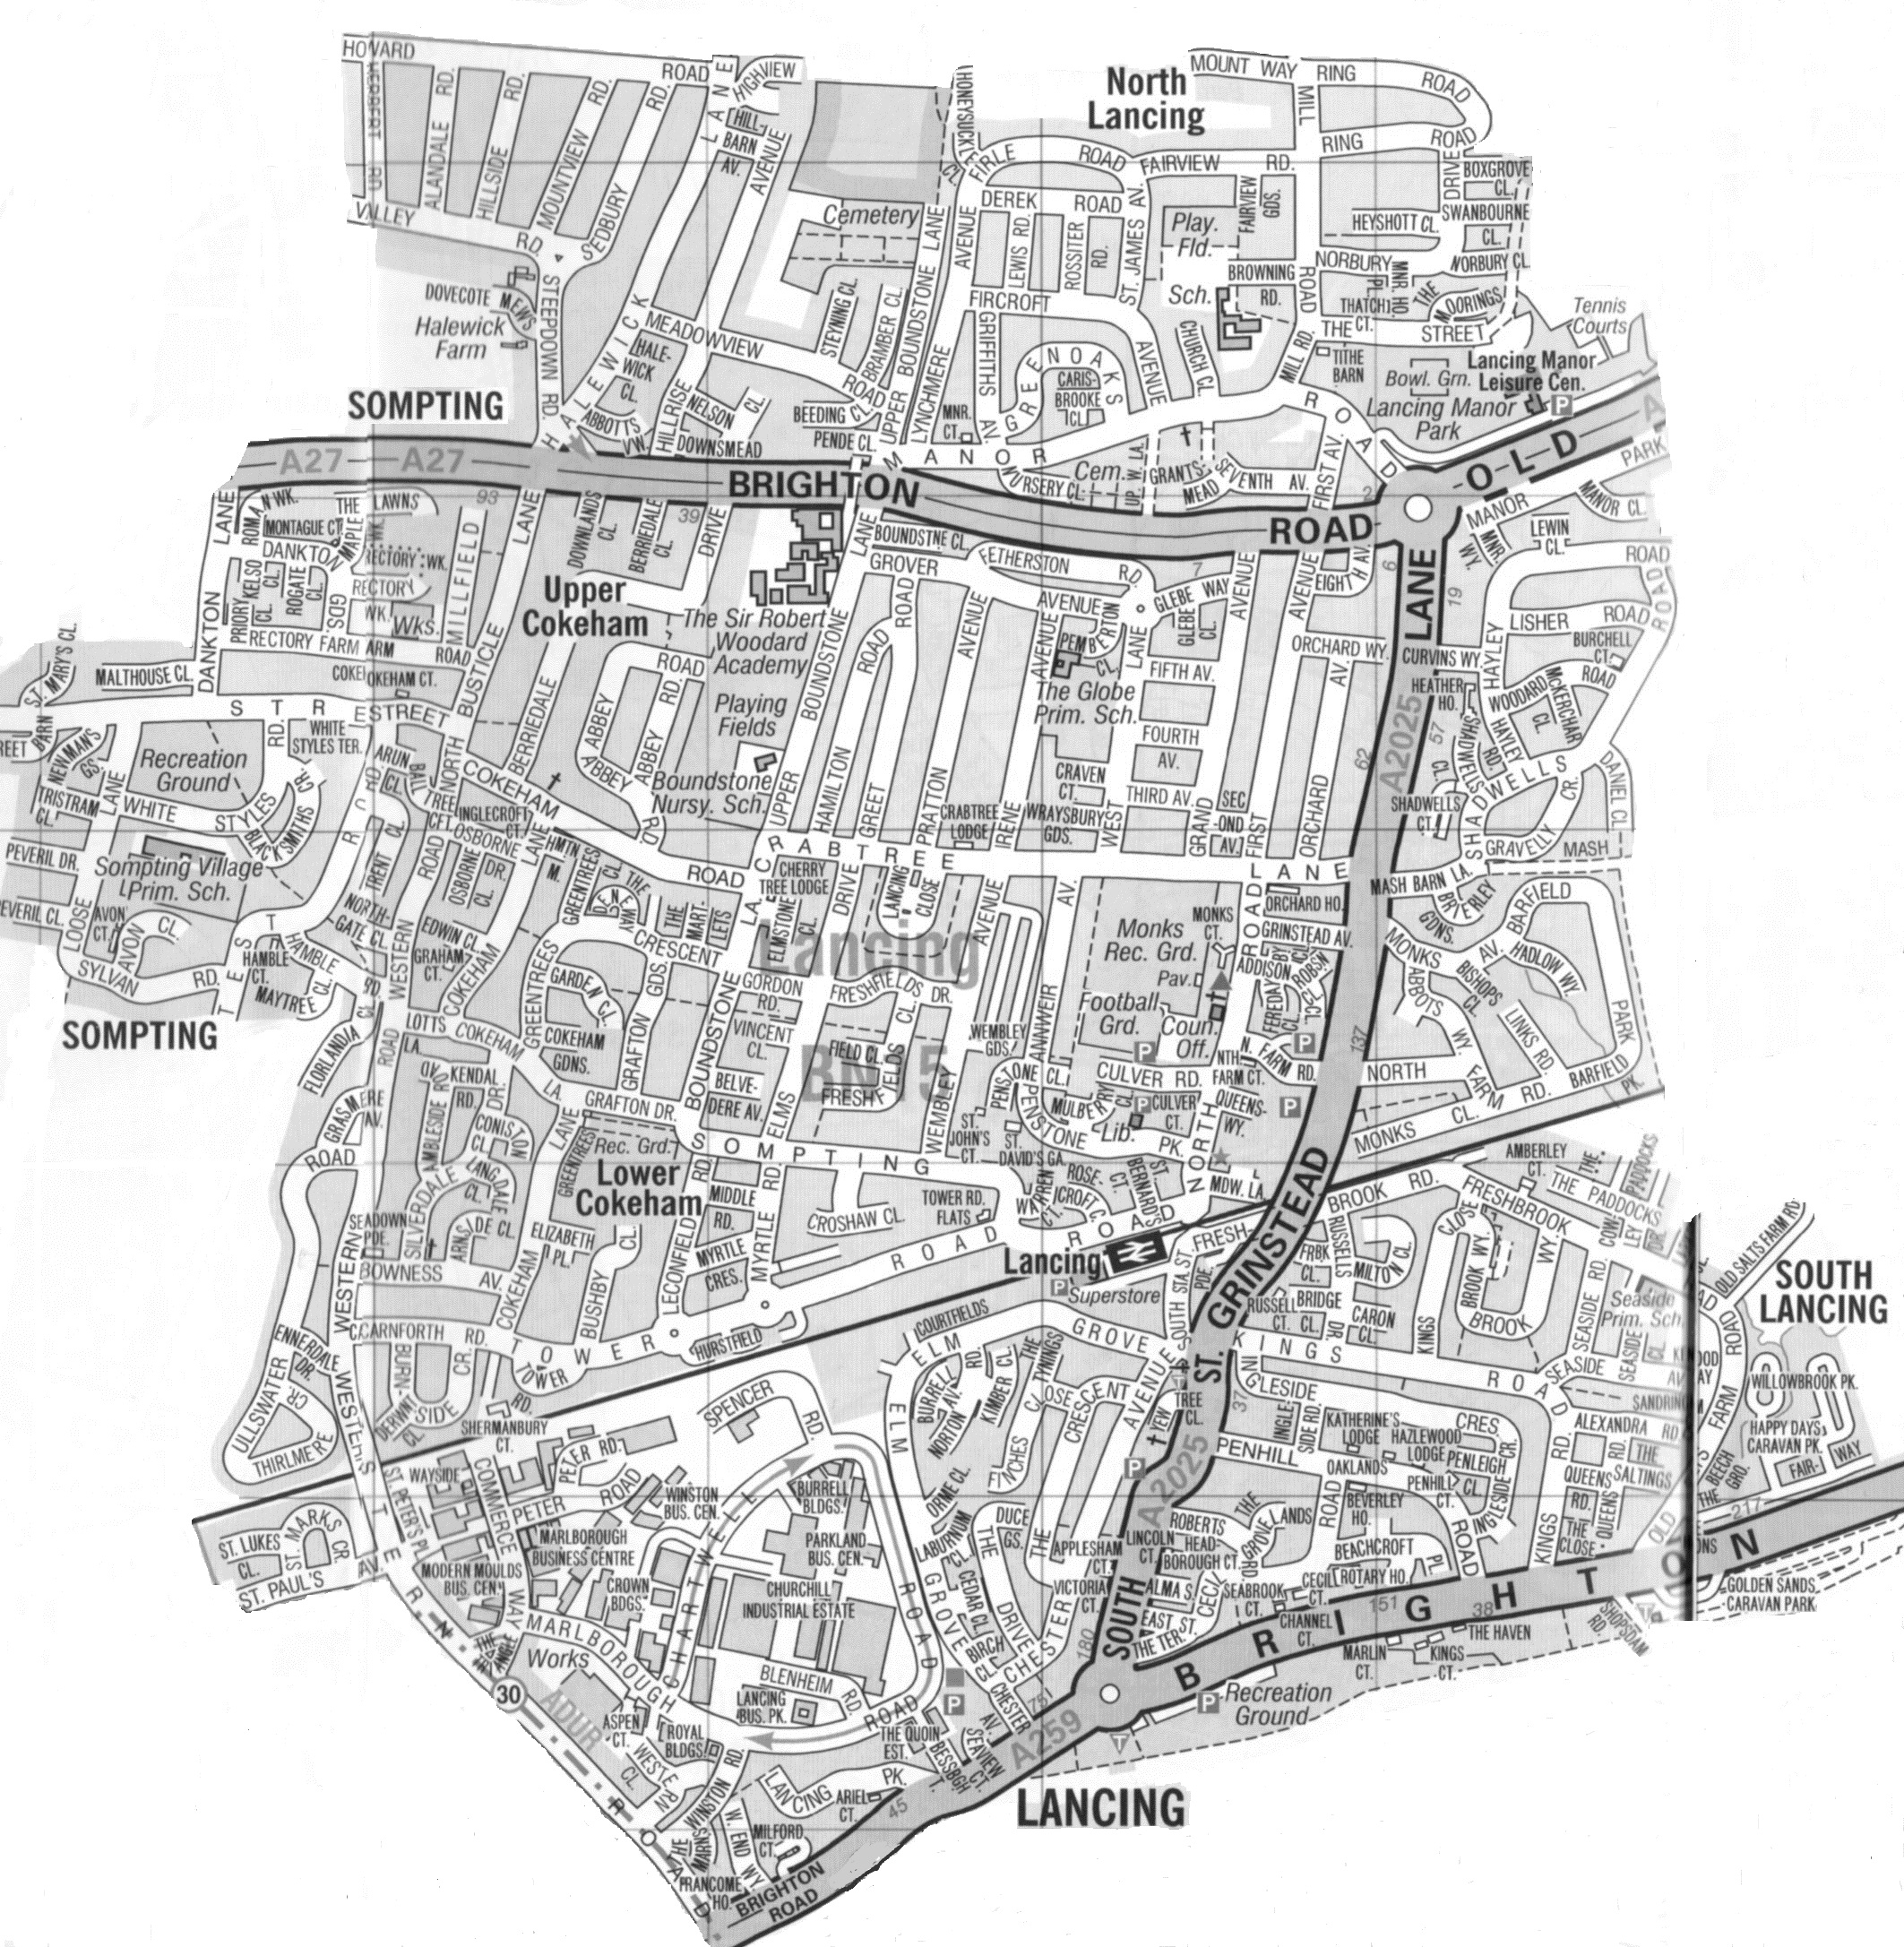 Worthing Direct Leaflet Distribution Services North Lancing & Sompting delivery area map